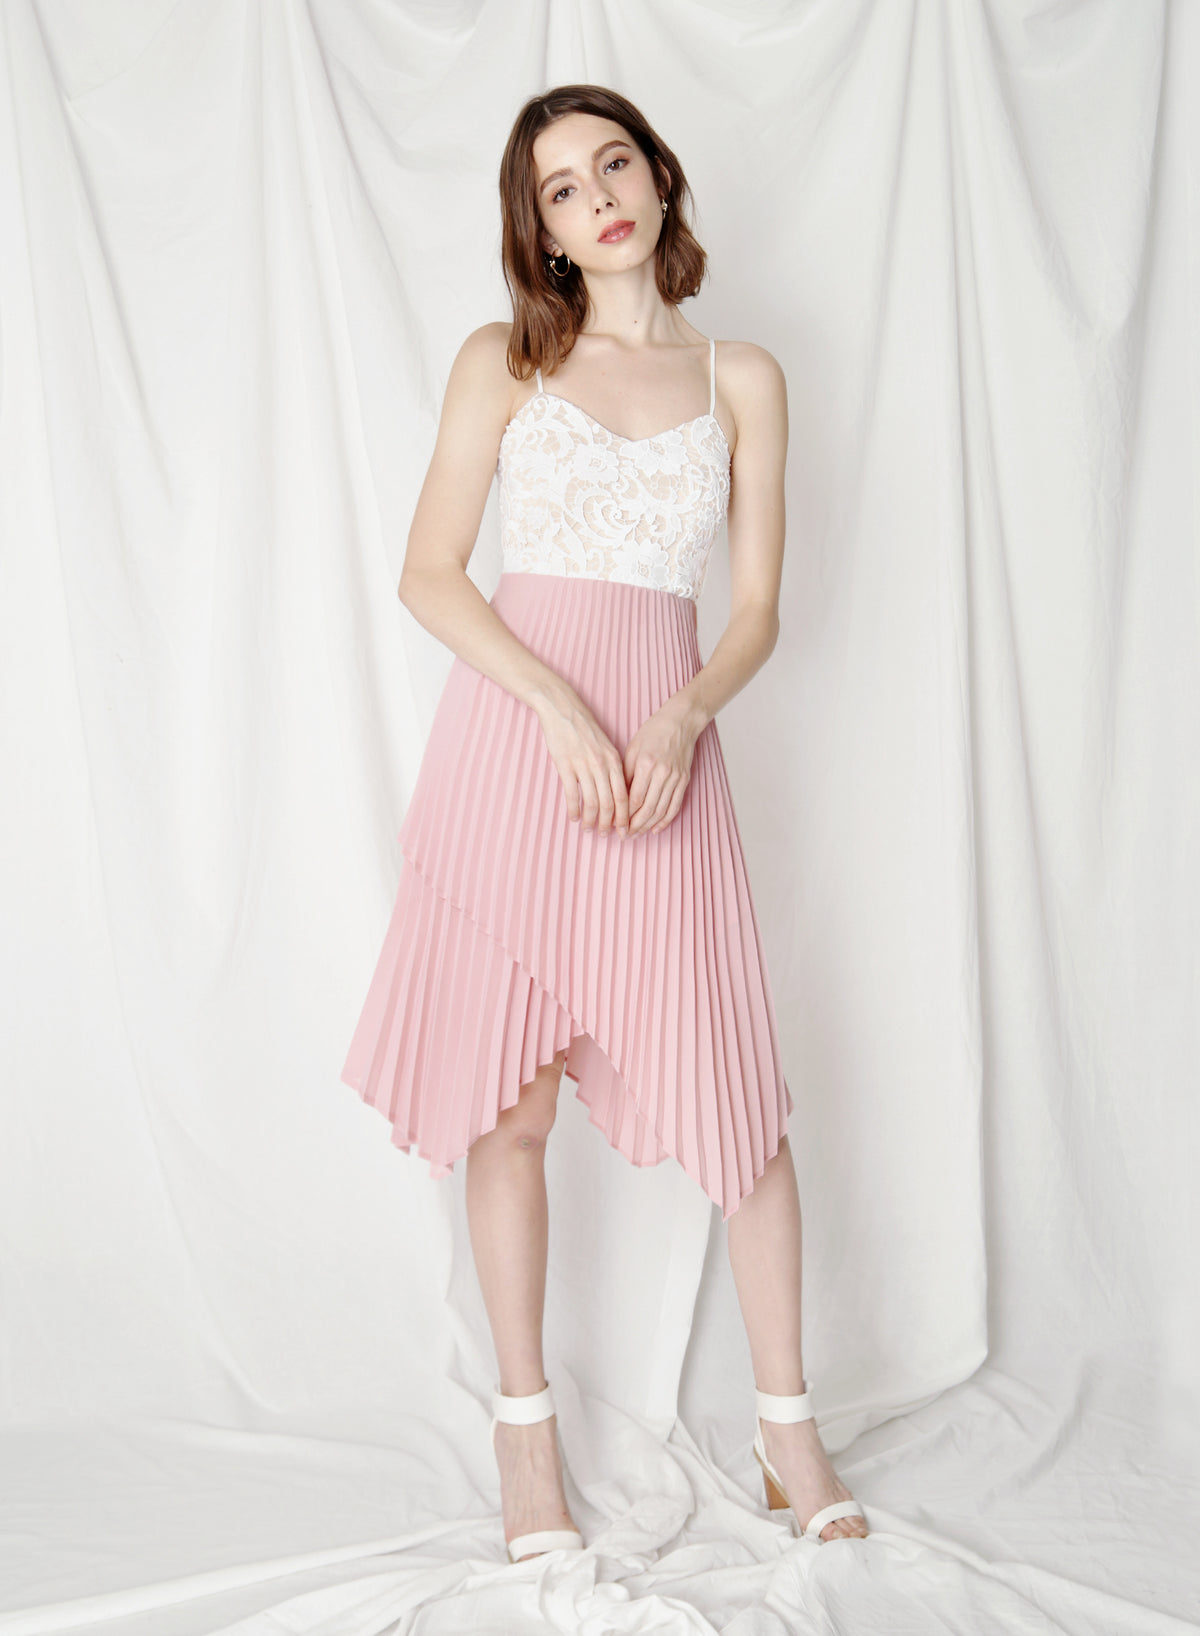 Finesse Uneven Pleats Dress (Blush) at $ 44.50 only sold at And Well Dressed Online Fashion Store Singapore